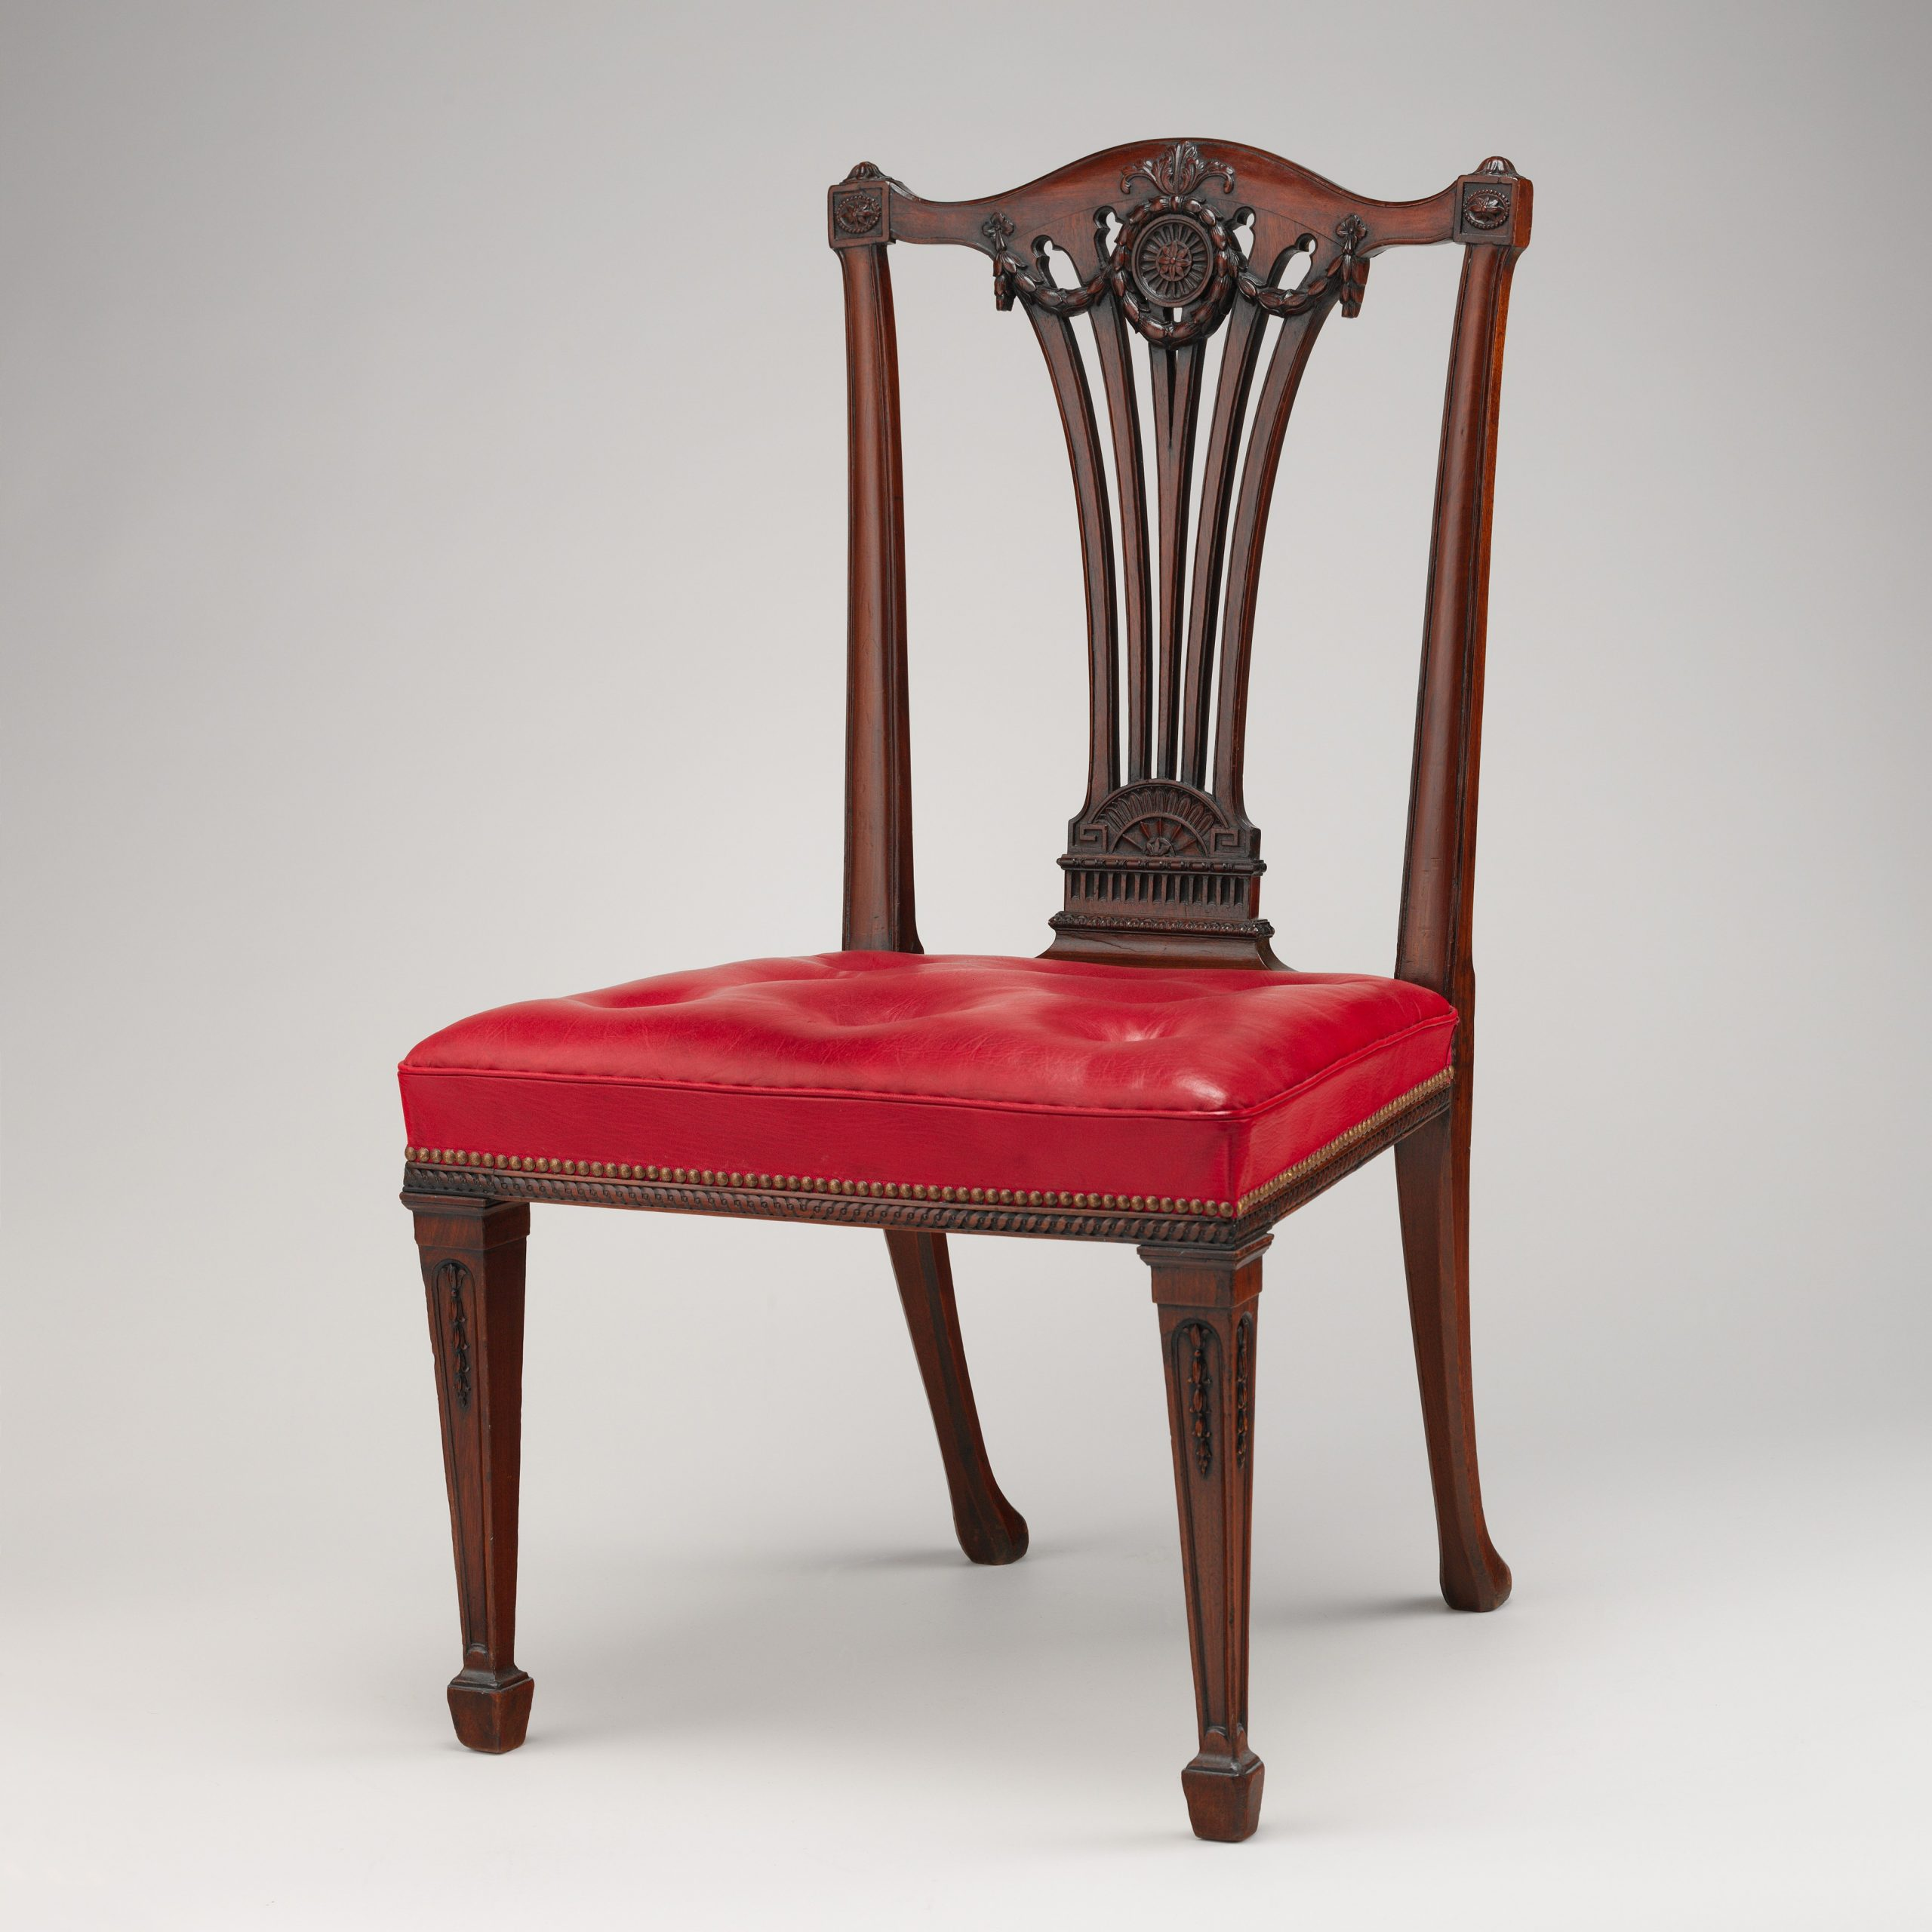 Chair – Wikipedia Pertaining To Well Liked Dual Rider Glider Swings With Soft Touch Rope (Gallery 20 of 30)